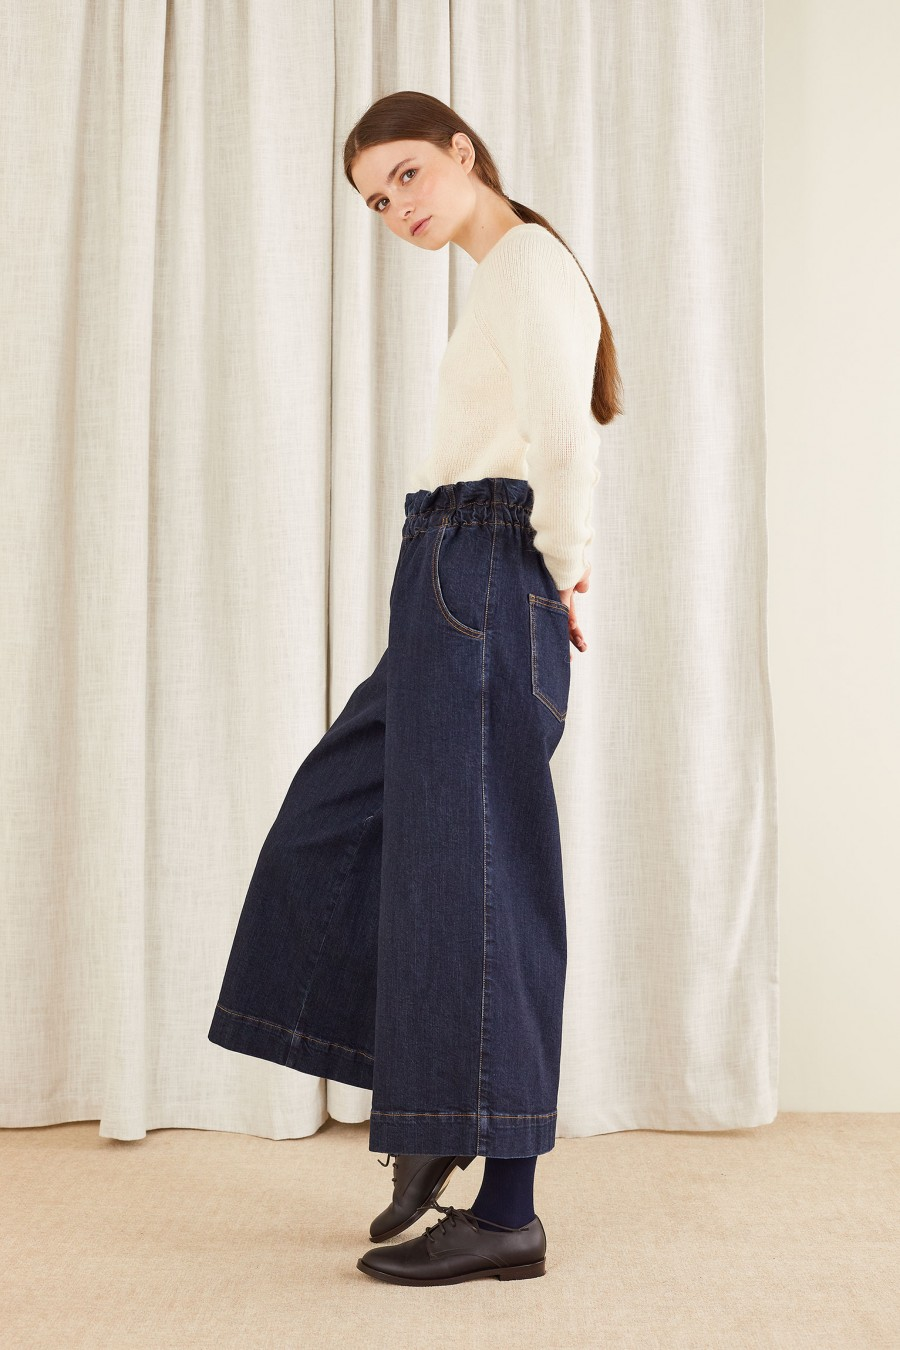 fashionable culottes denim trousers